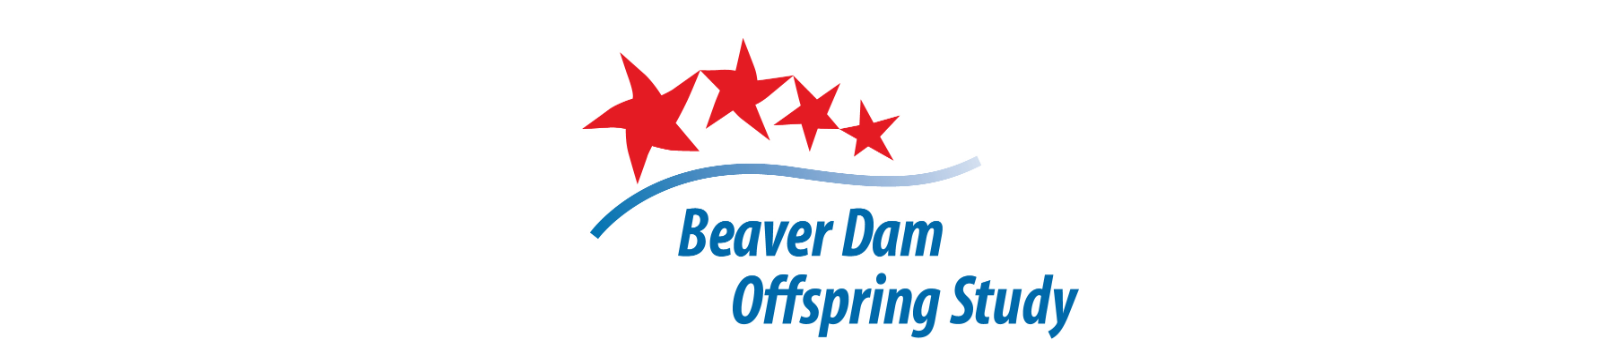 Beaver Dam Offspring Study Logo- four stars on top getting smaller separated from Beaver Dam Offspring Study text by blue line